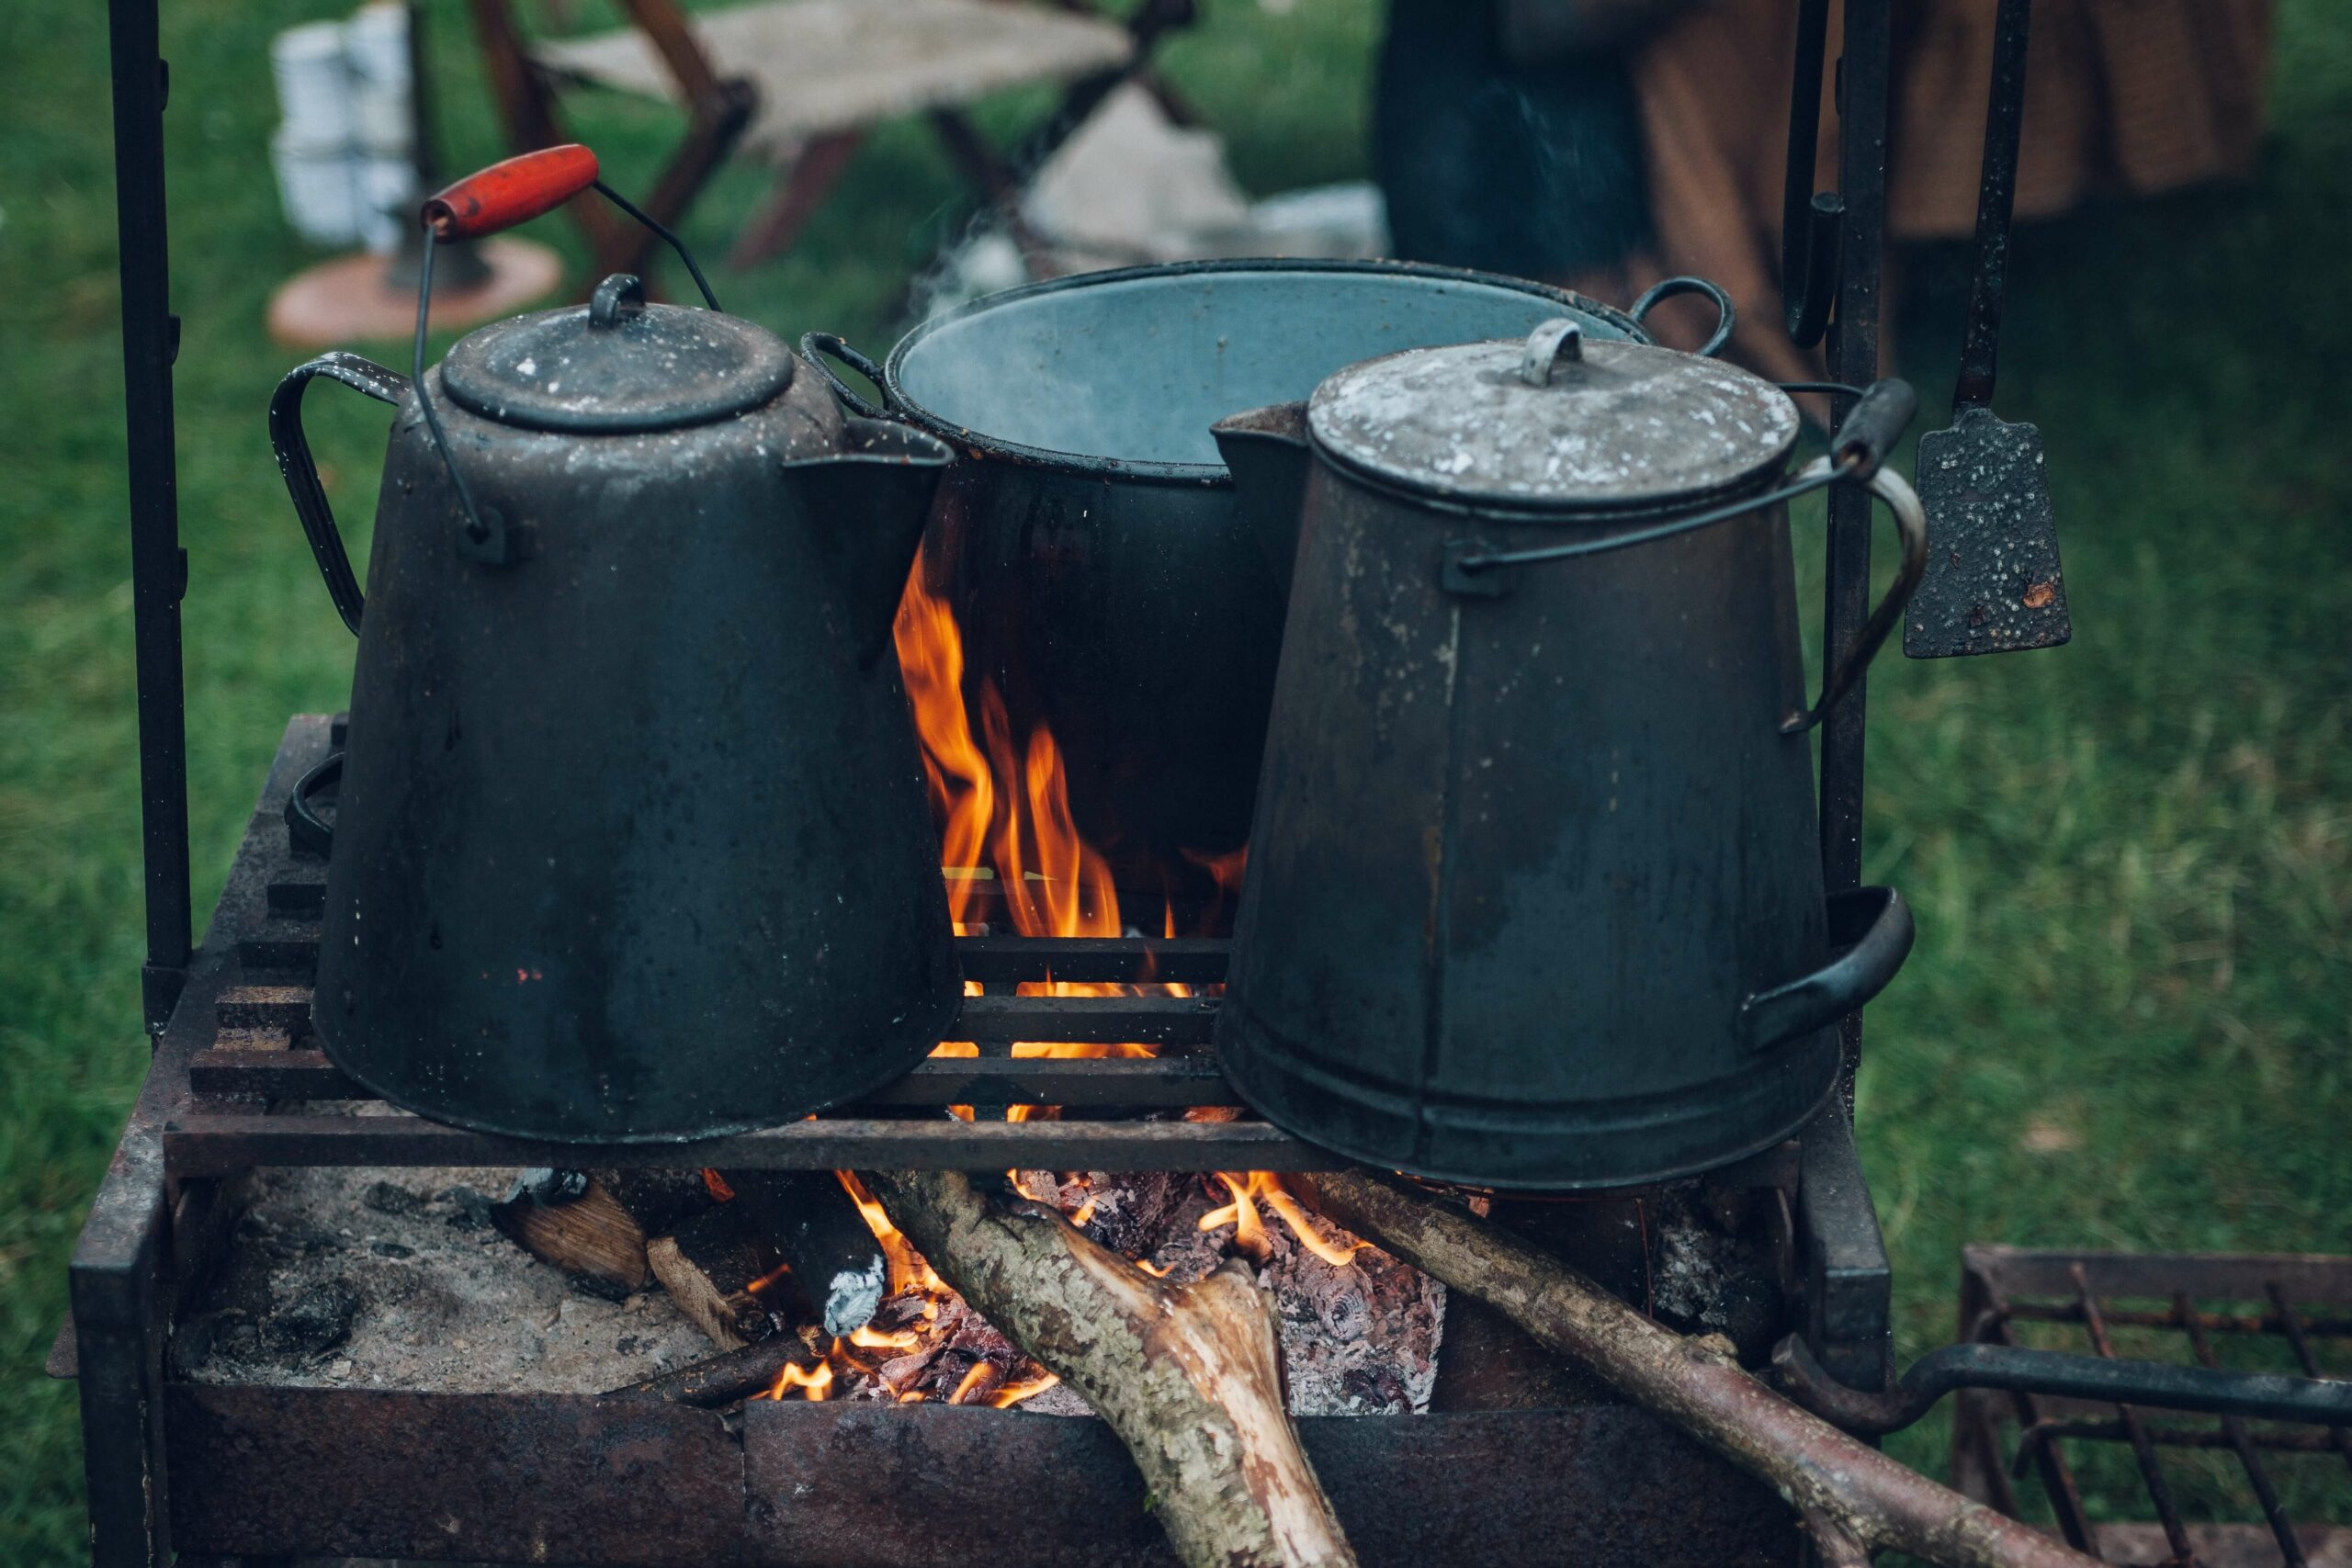 Easy Camping Recipes For Your Next National Parks Trip